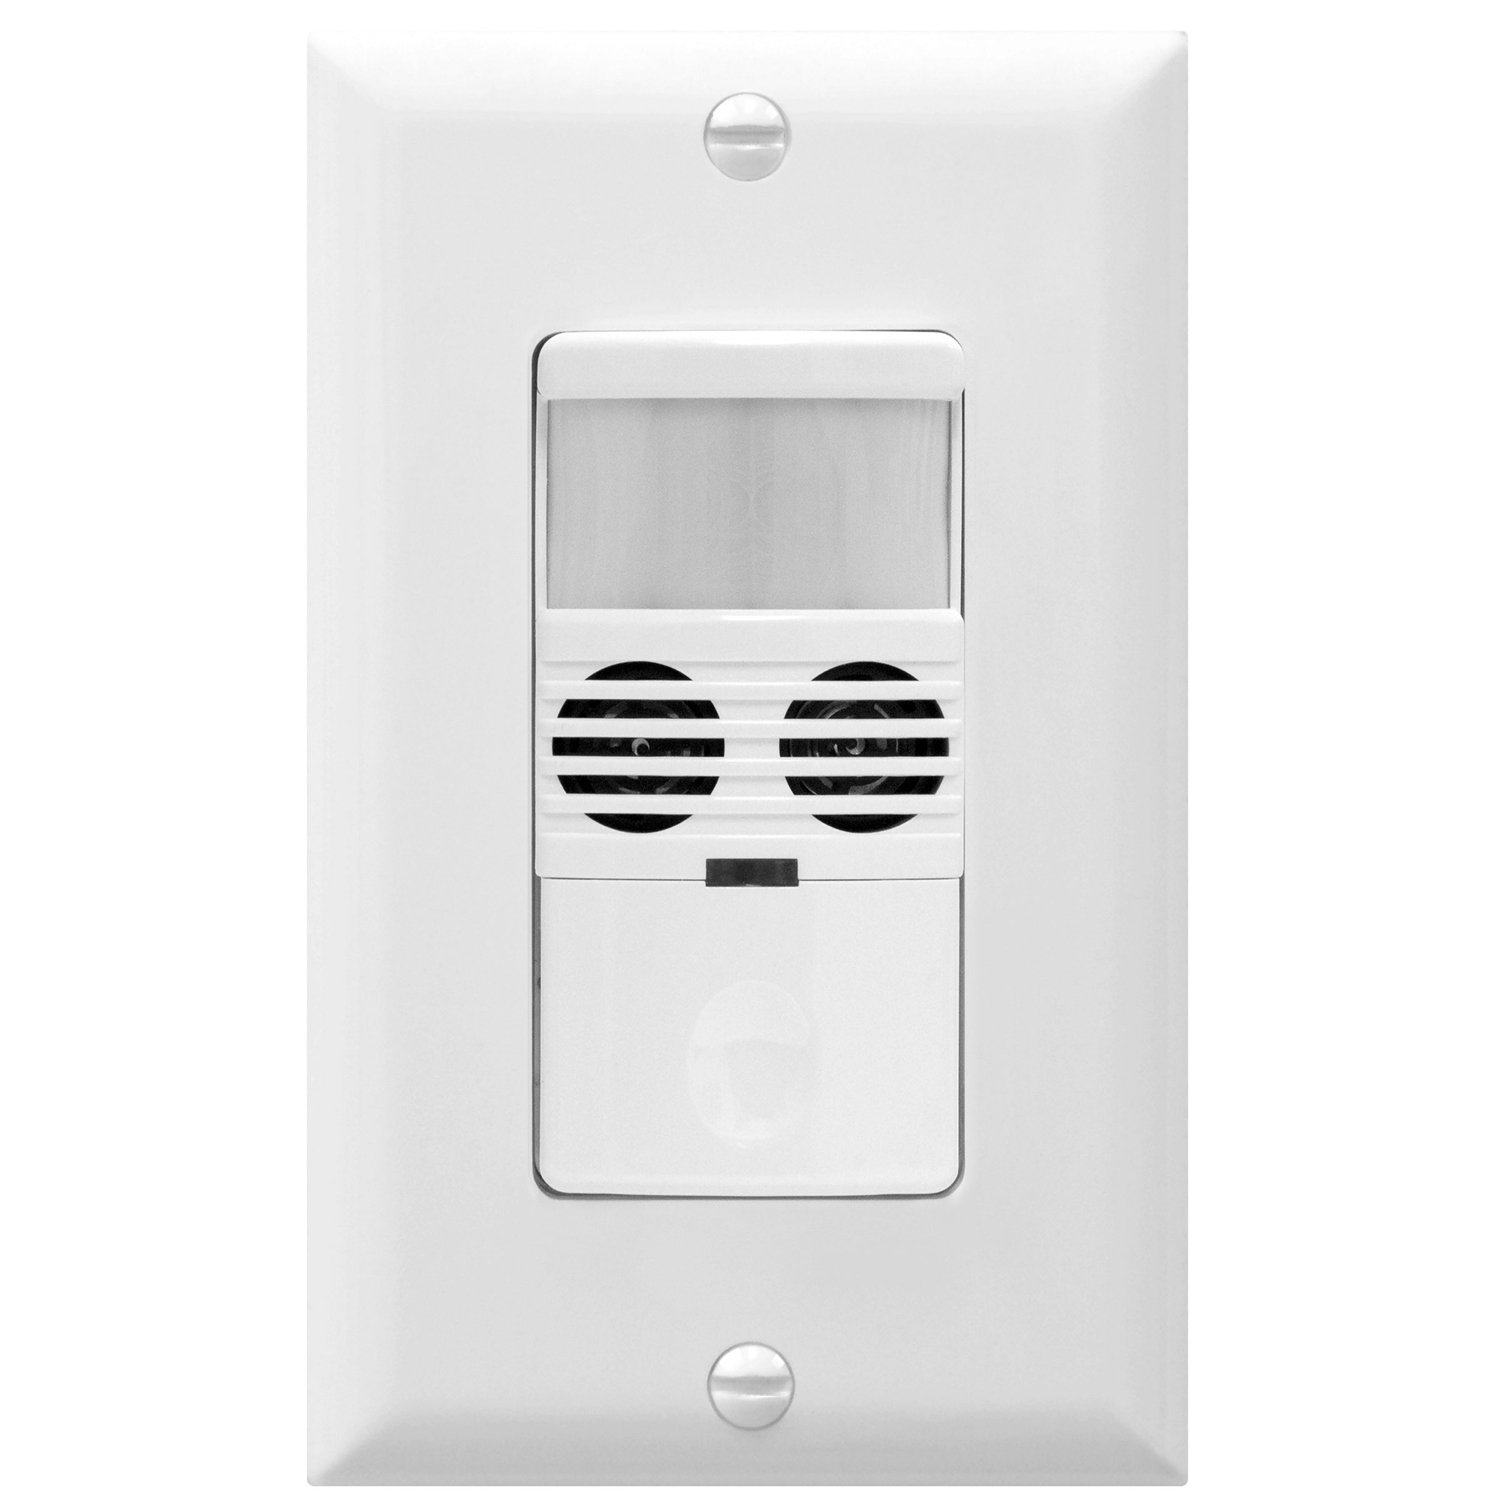 Best Rated In Motion Activated Wall Switches Helpful Customer Lighting Wiring Light Switch With Neutral Zwave Home Enerlites Mwos W Sensor Ultrasonic And Pir Dual Technology Occupancy